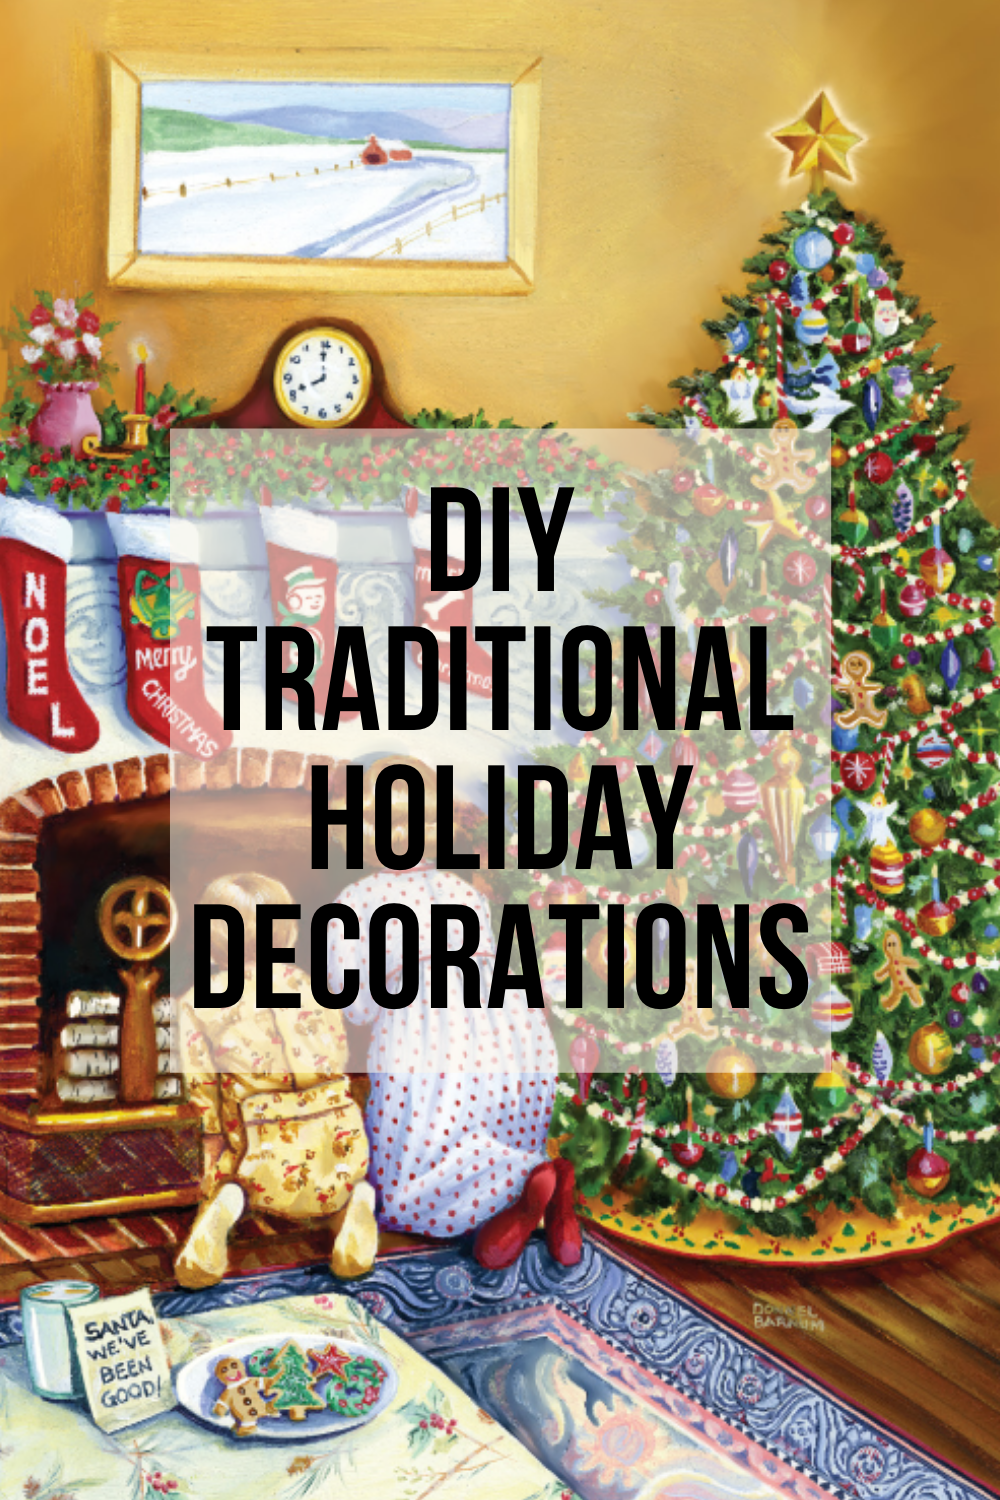 DIY Traditional Holiday Decorations with Kids waiting by the chimney for santa